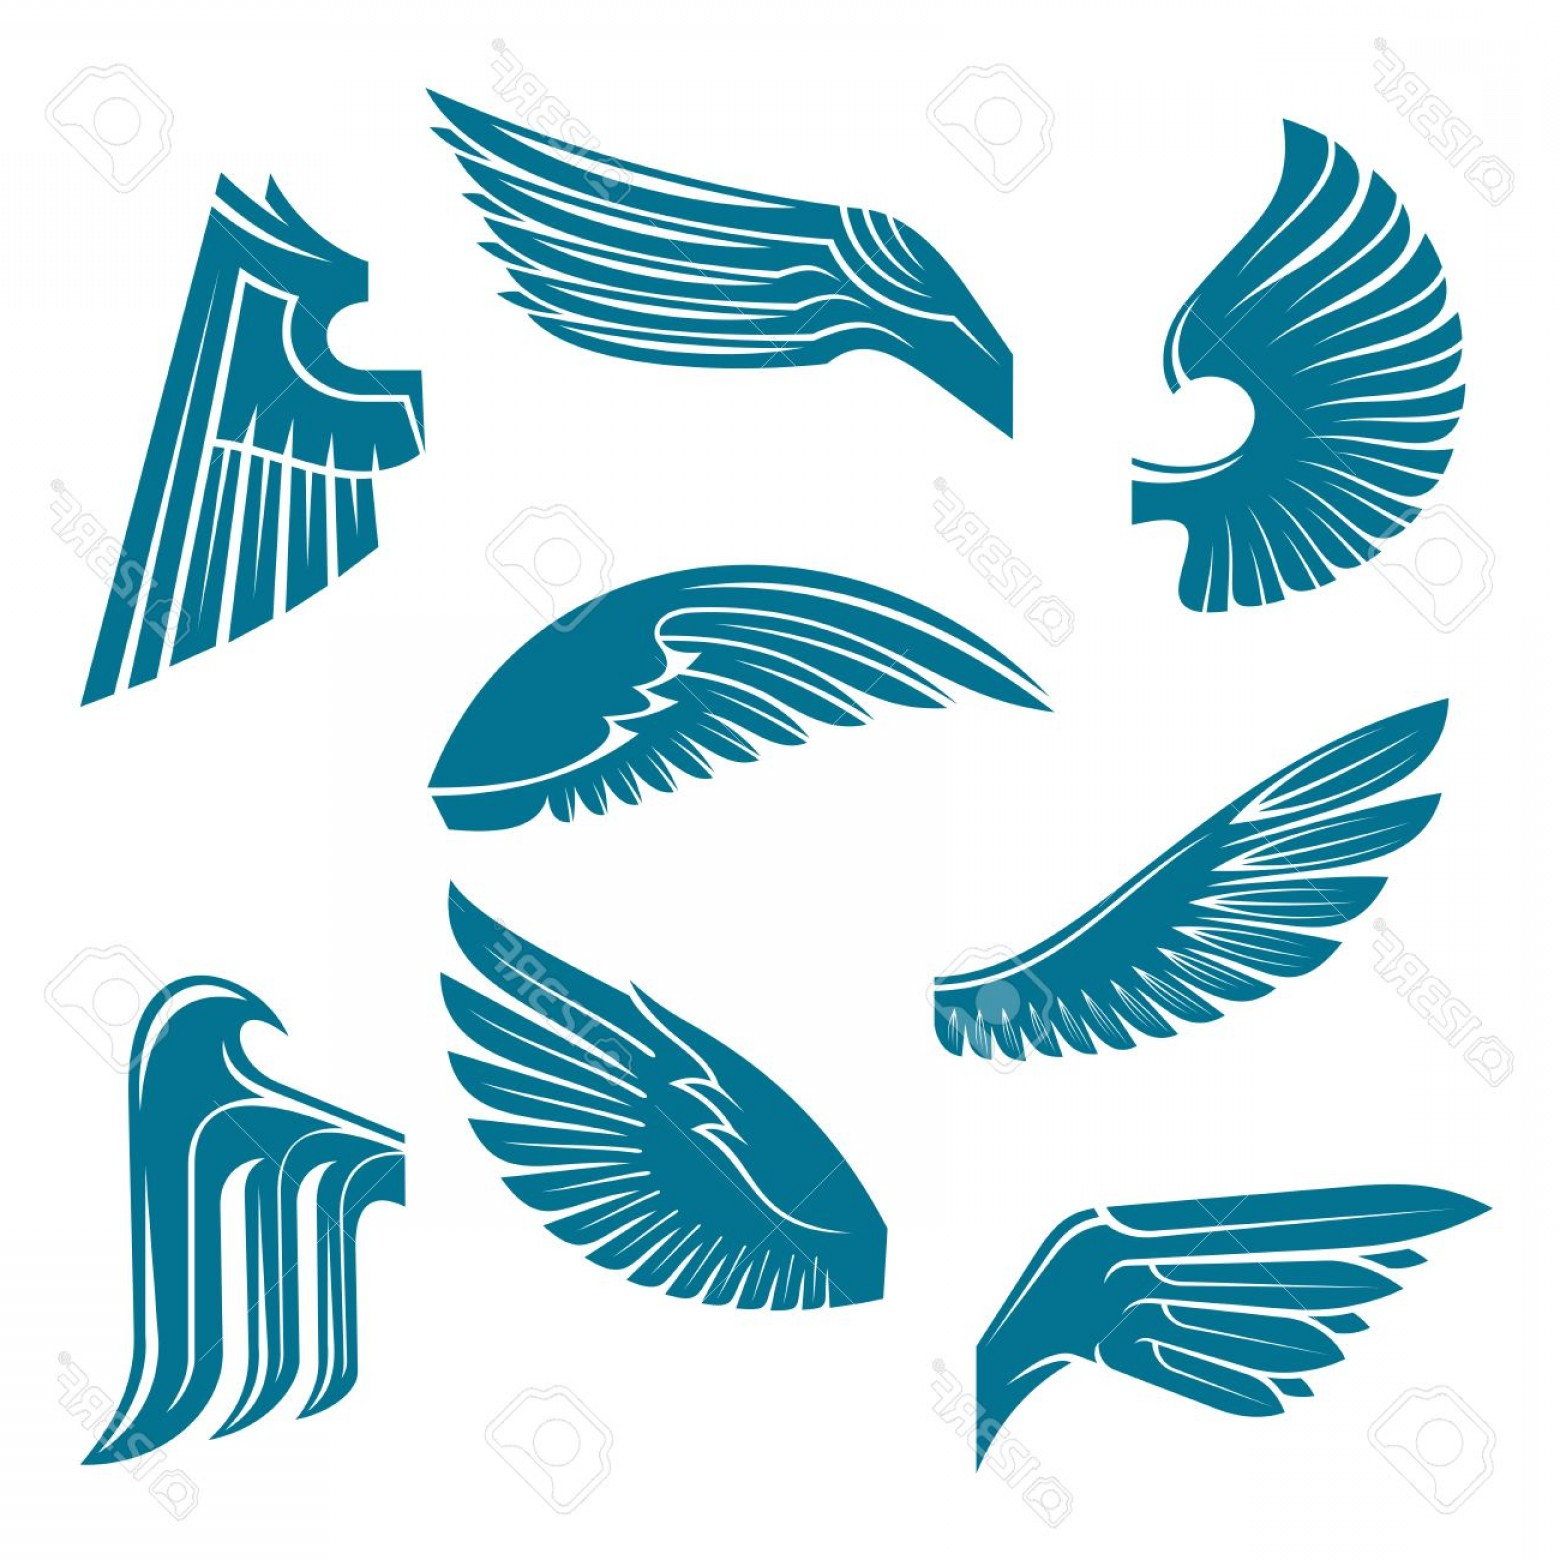 Falcon Wing Vector Art: Photostock Vector Tucked And Spread Wings Vintage Heraldic Symbols Of Blue Feathered Wings Of Eagle Swan Falcon Or Rav